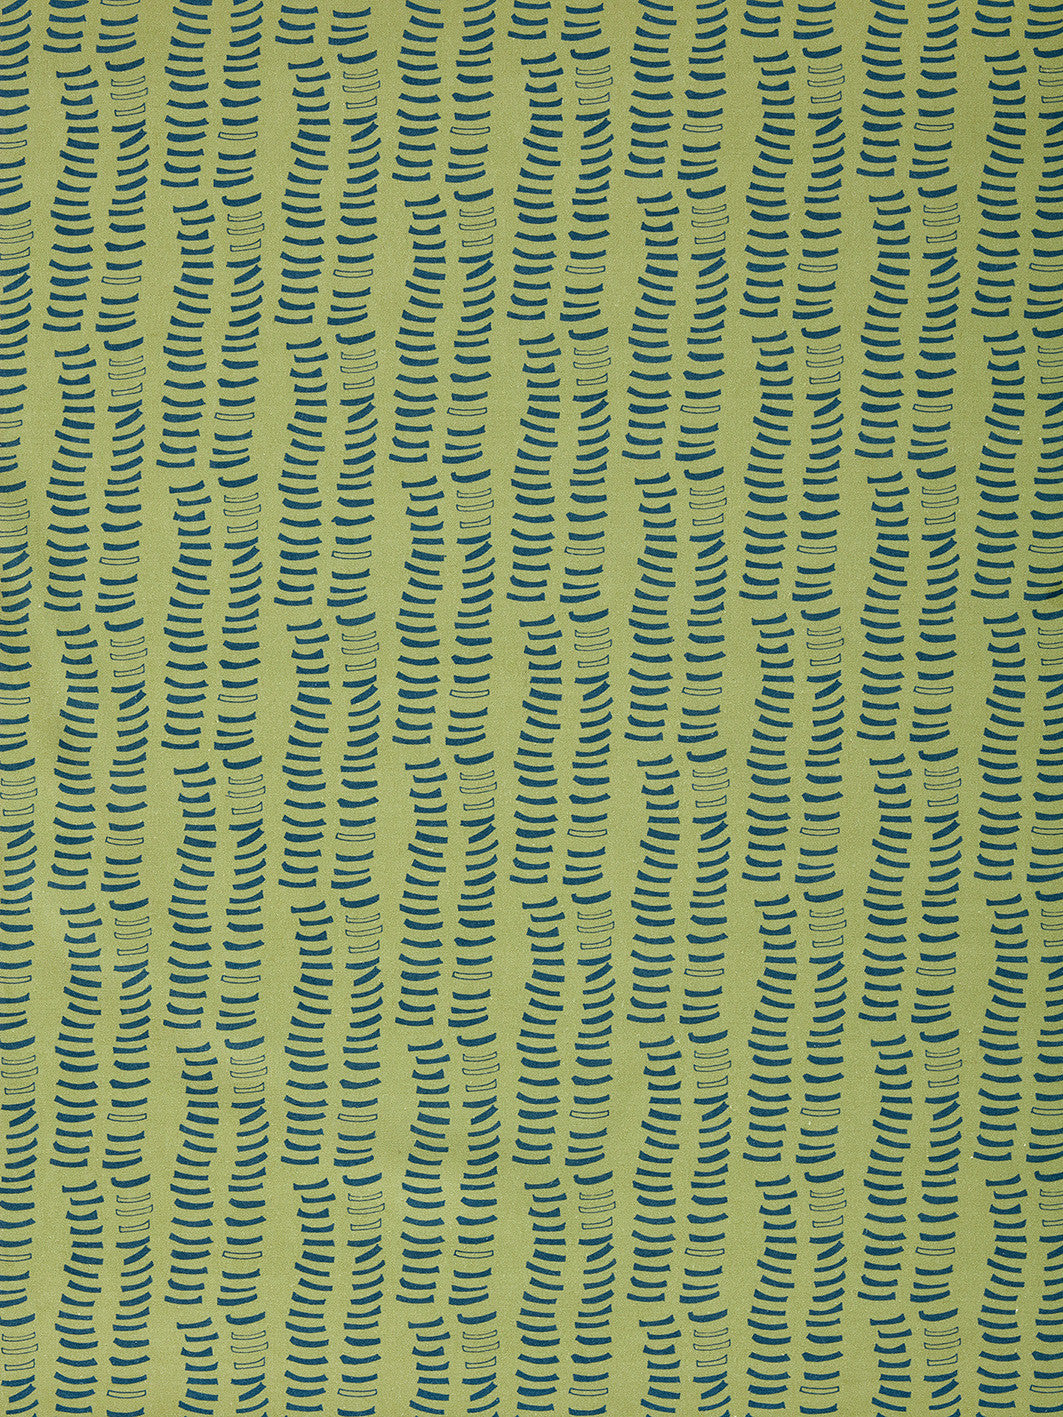 Graphic Rib Pattern Pattern Screen Printed Linen Cotton Canvas Home Decor Curtain blind upholstery Fabric in Antique Moss Green and Dark Petrol Blue Canada USA